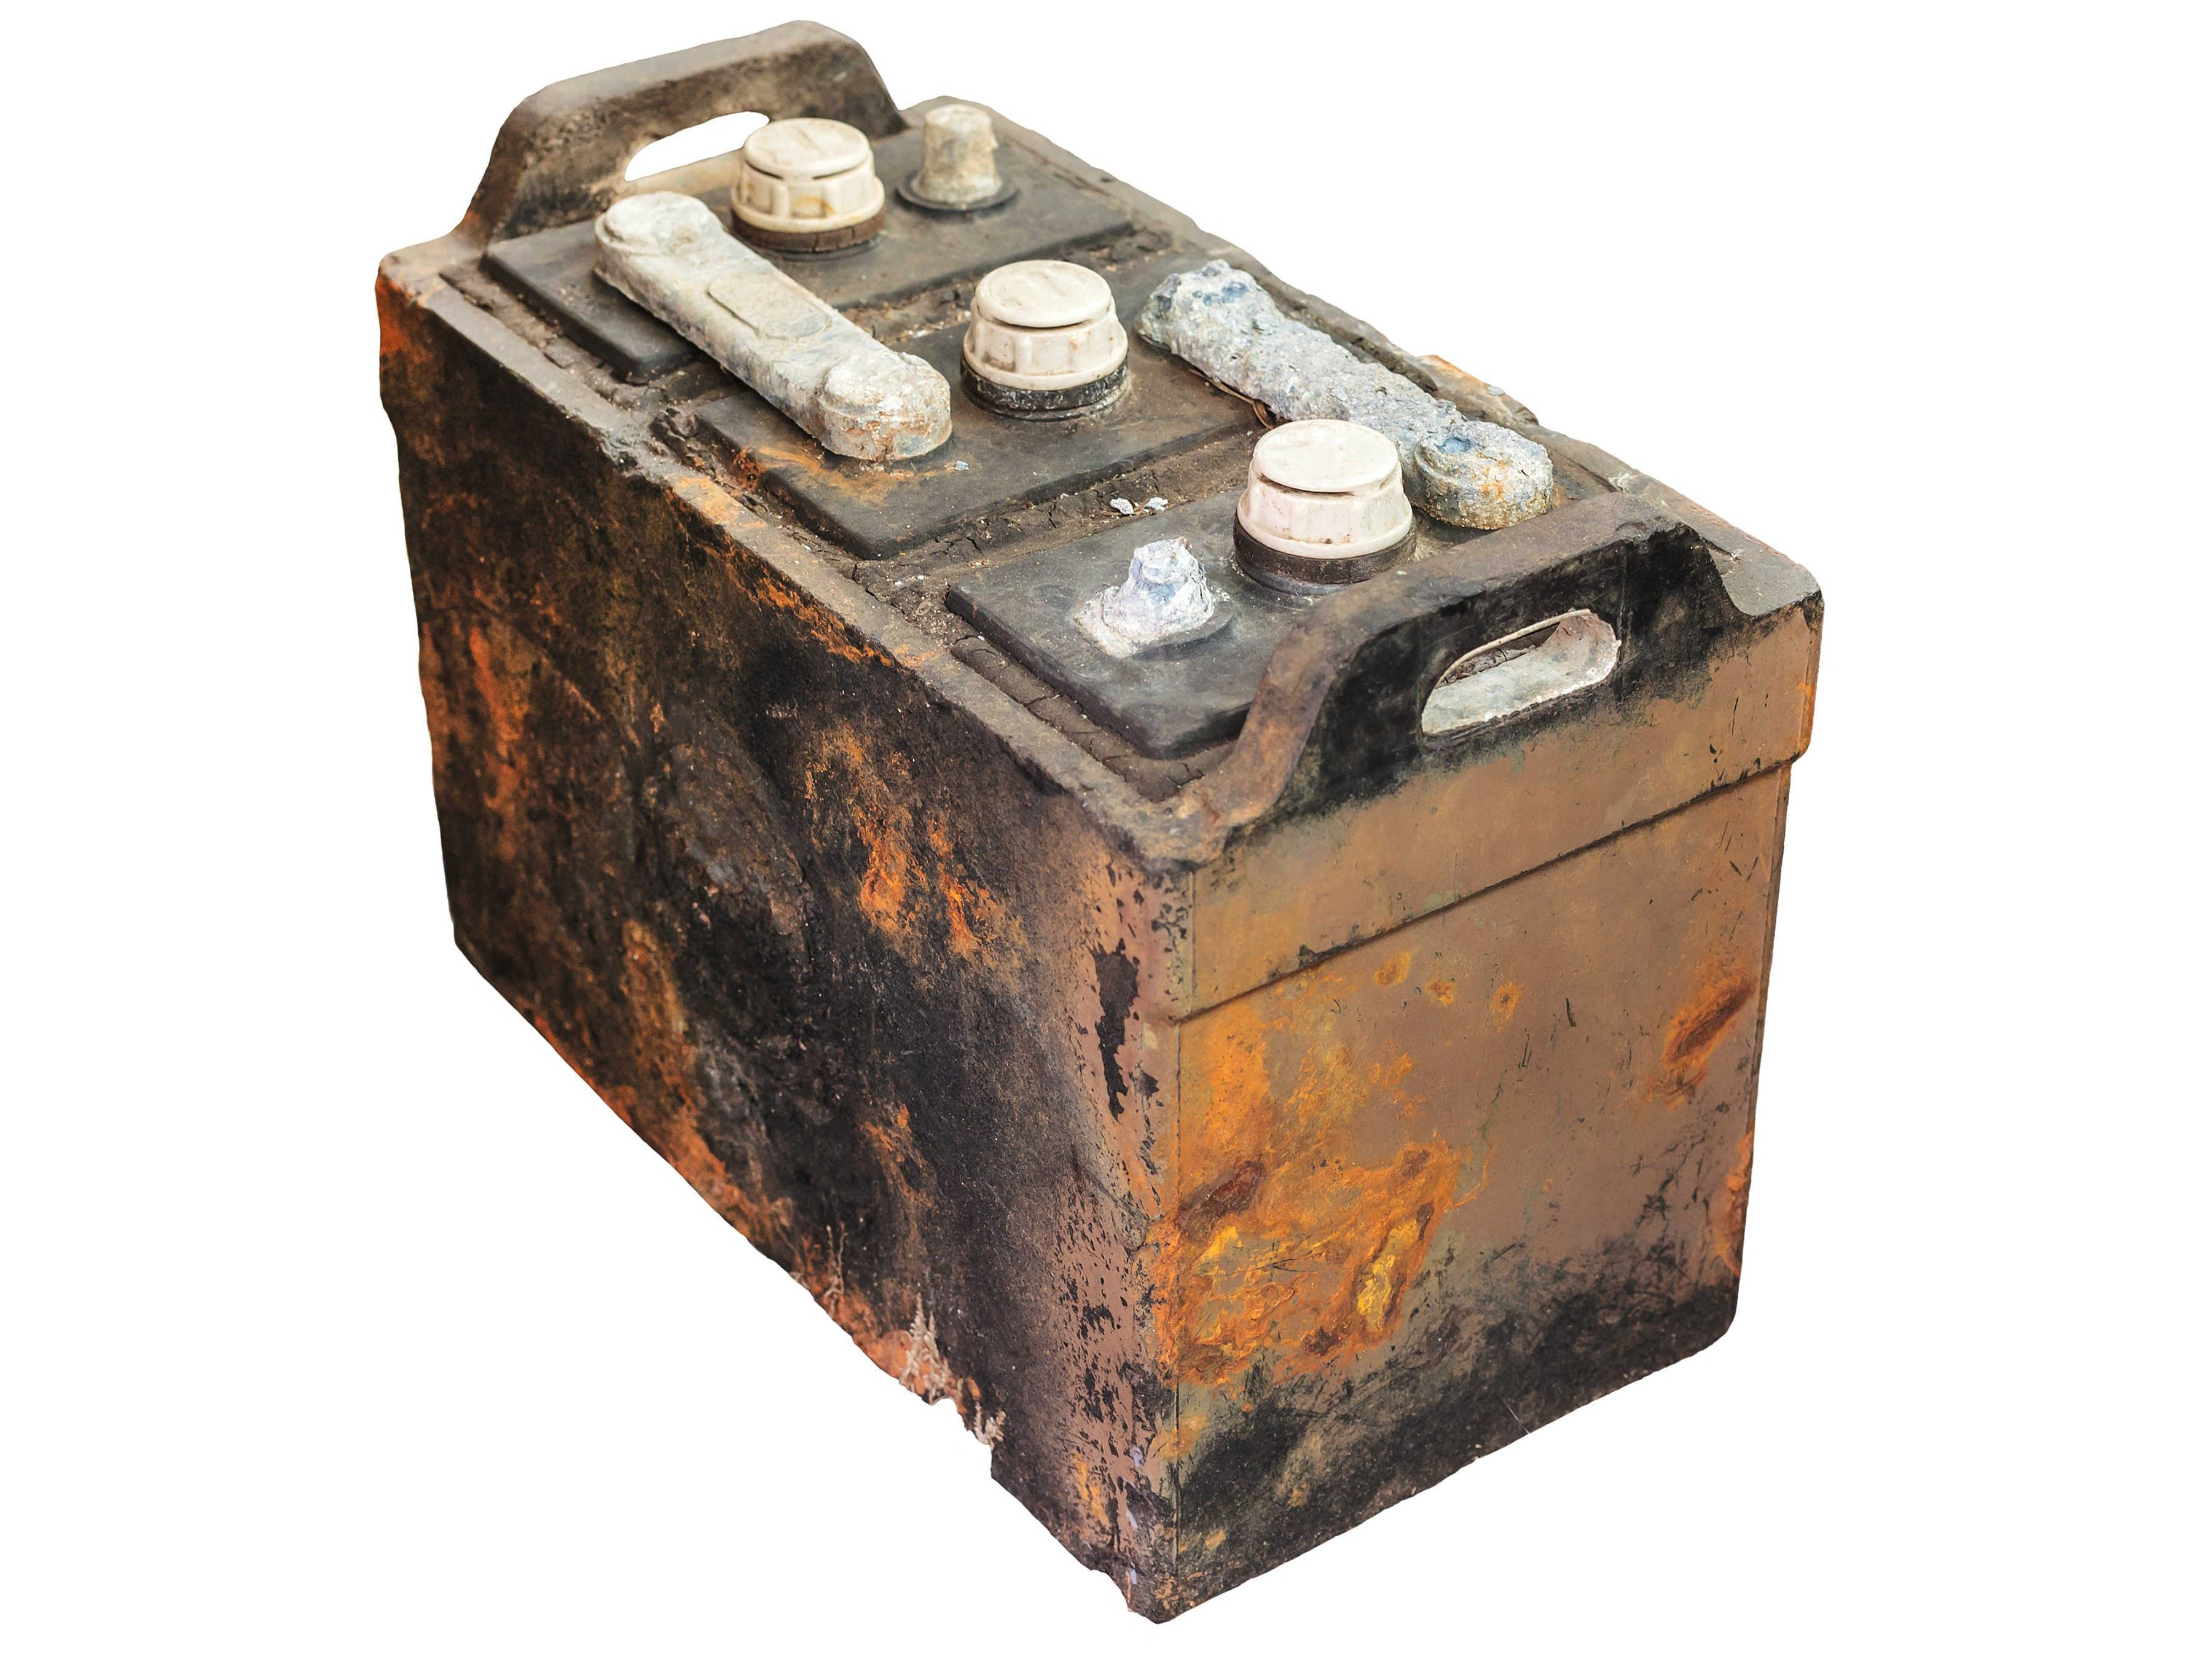 4. Dispose of your old car battery